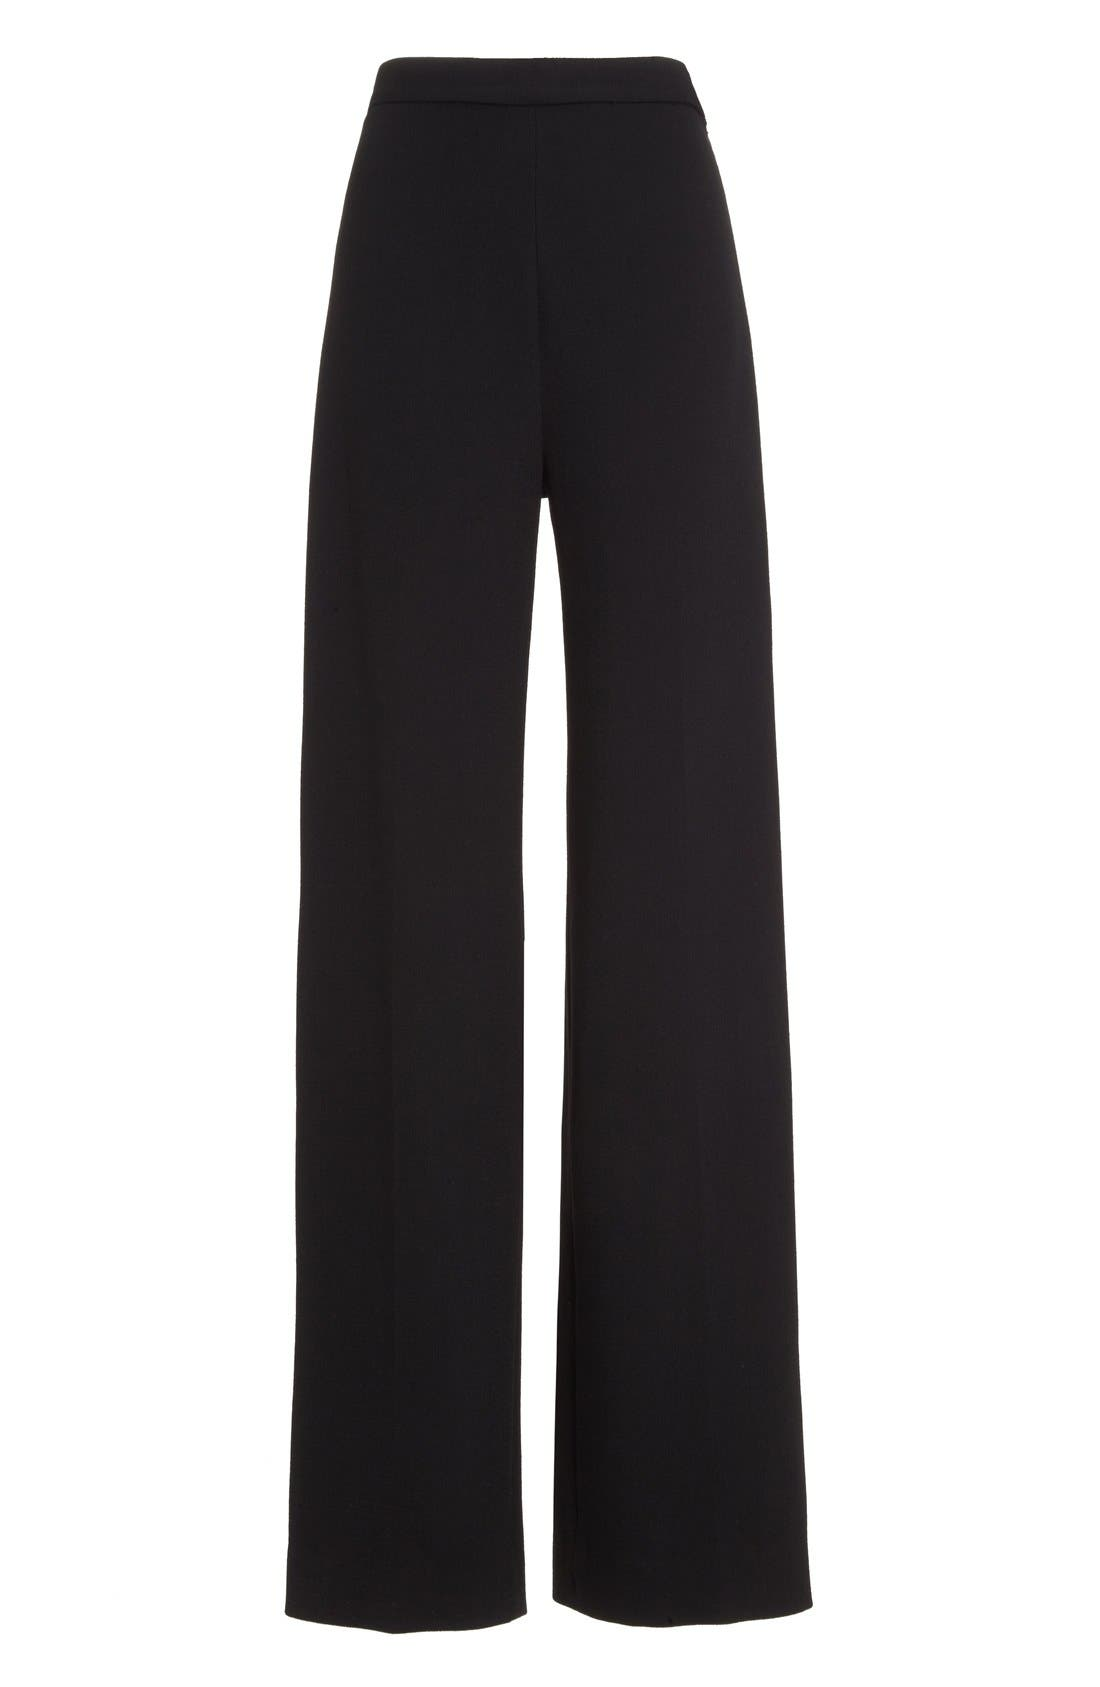 Stretch Wool High Waist Pants,                             Alternate thumbnail 4, color,                             Black